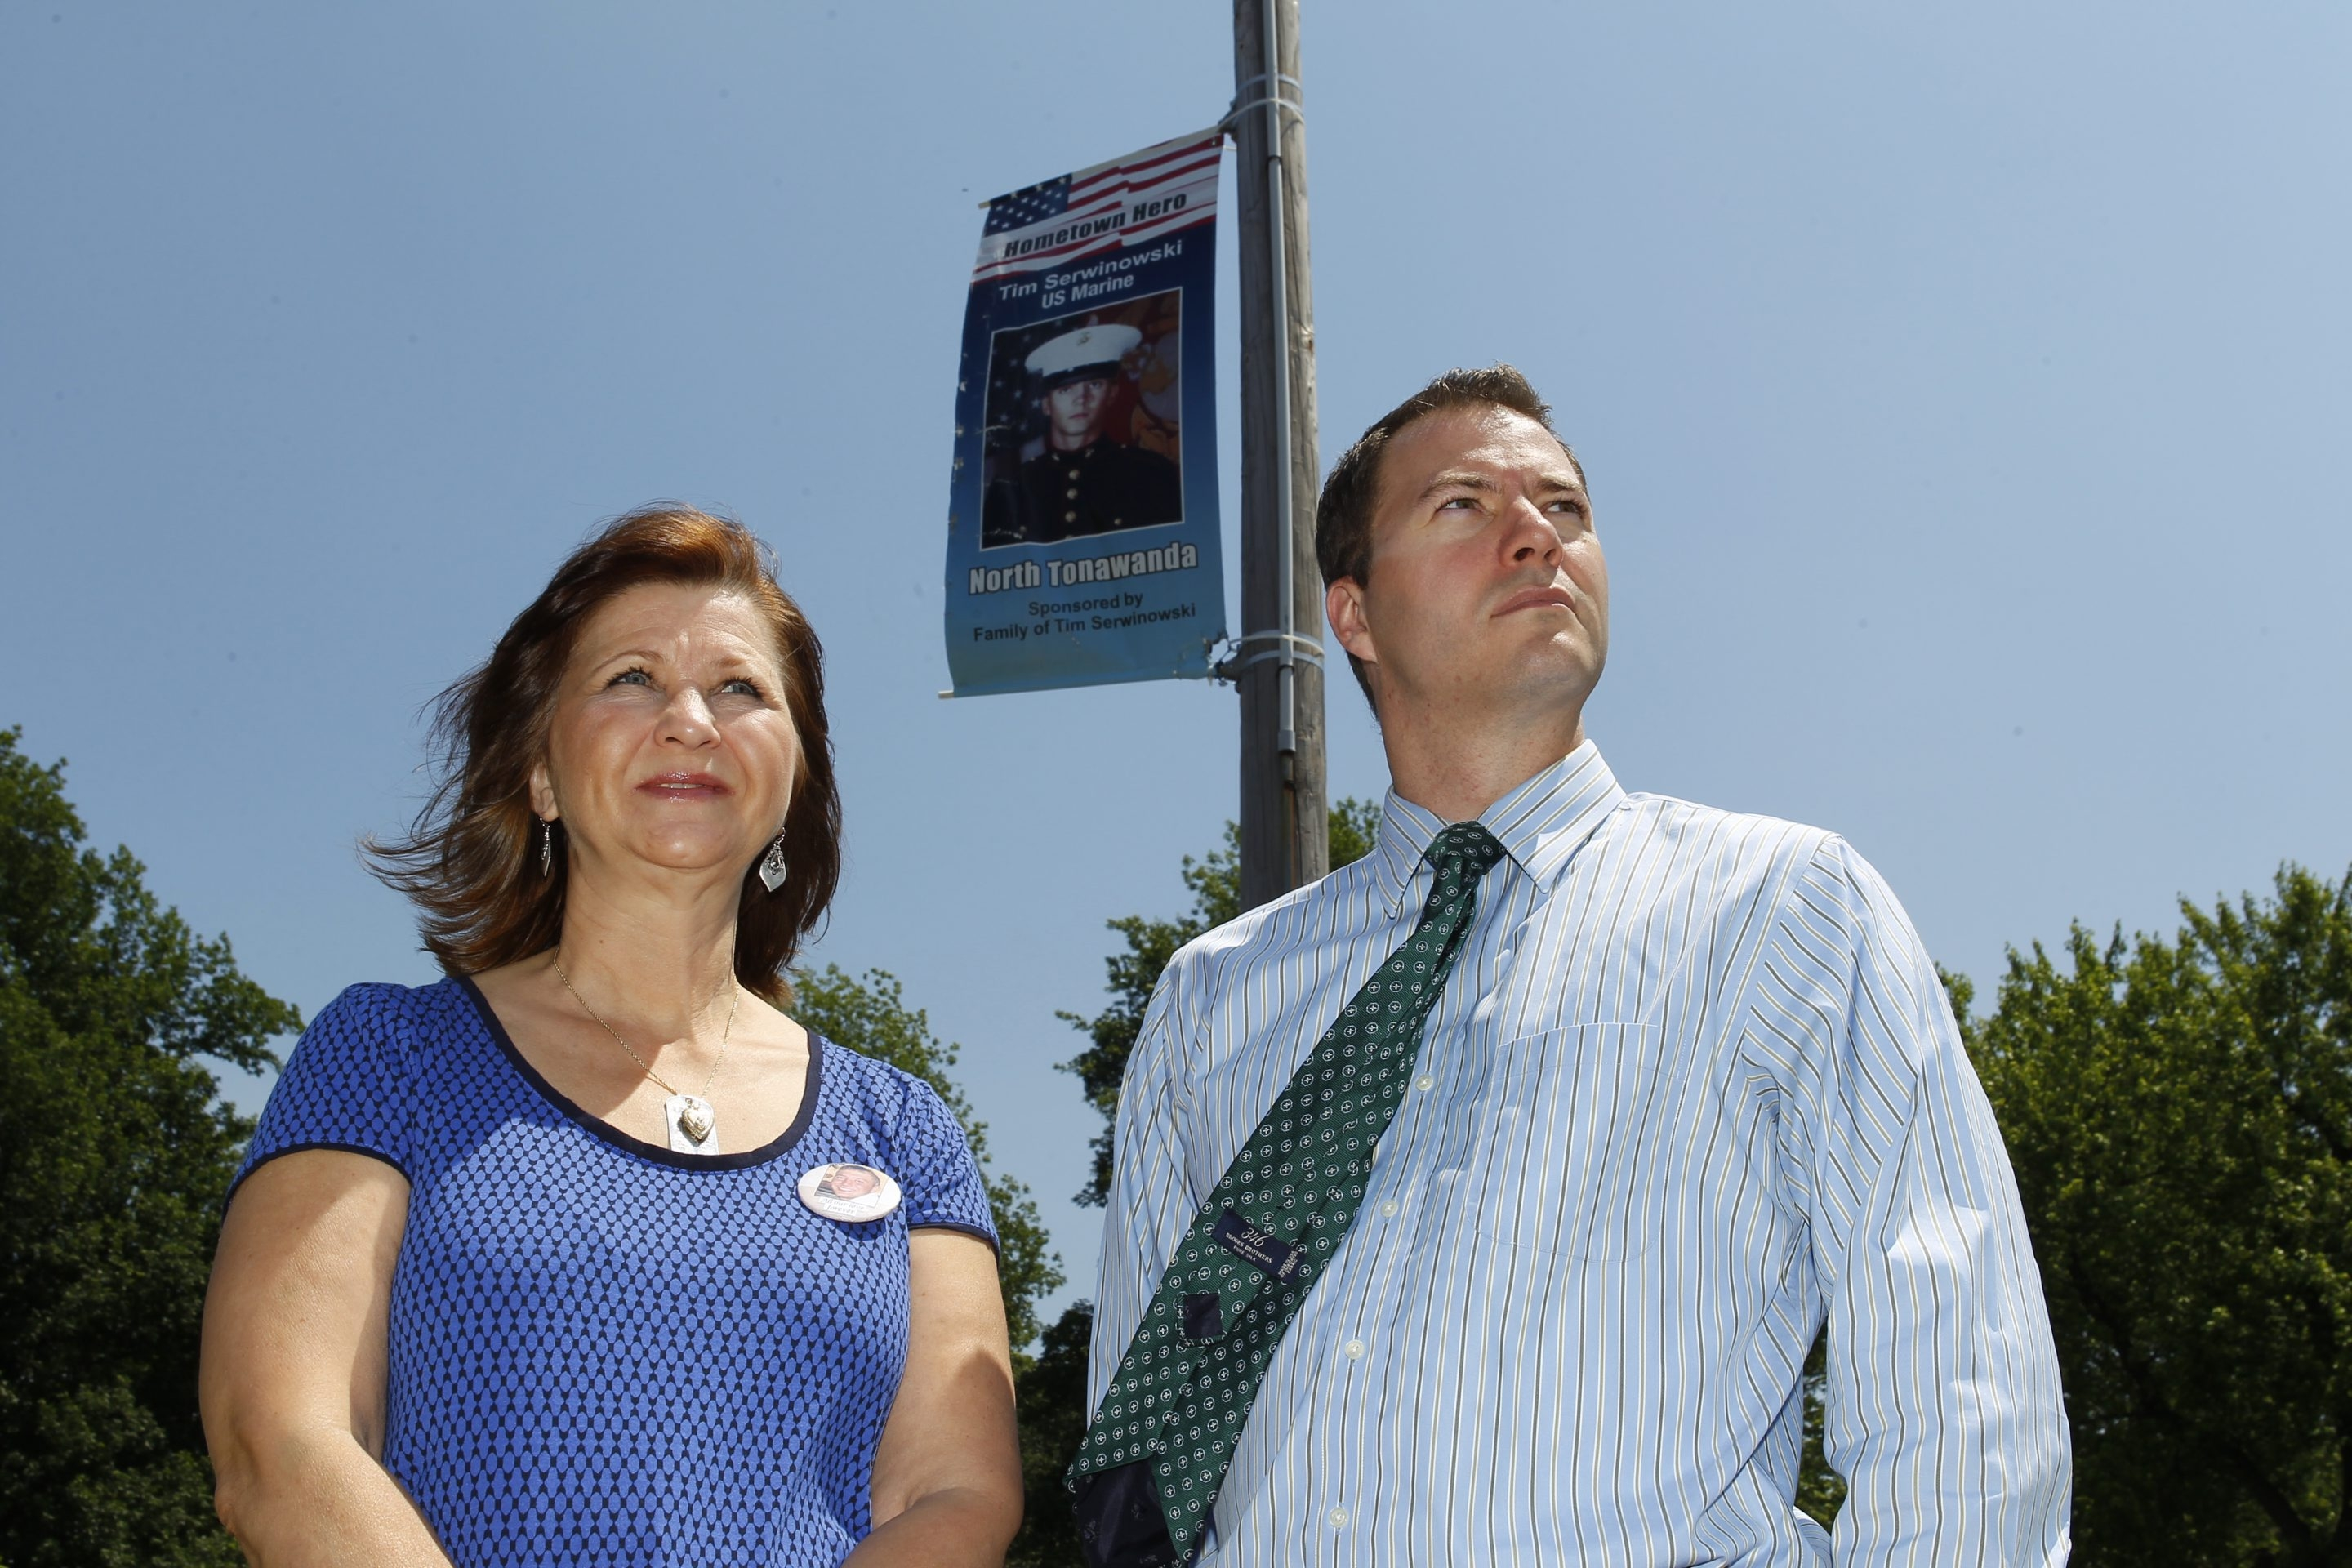 Sally Urban and North Tonawanda Mayor Robert G. Ortt  stand in front  of a banner honoring Urban's son outside City Hall.